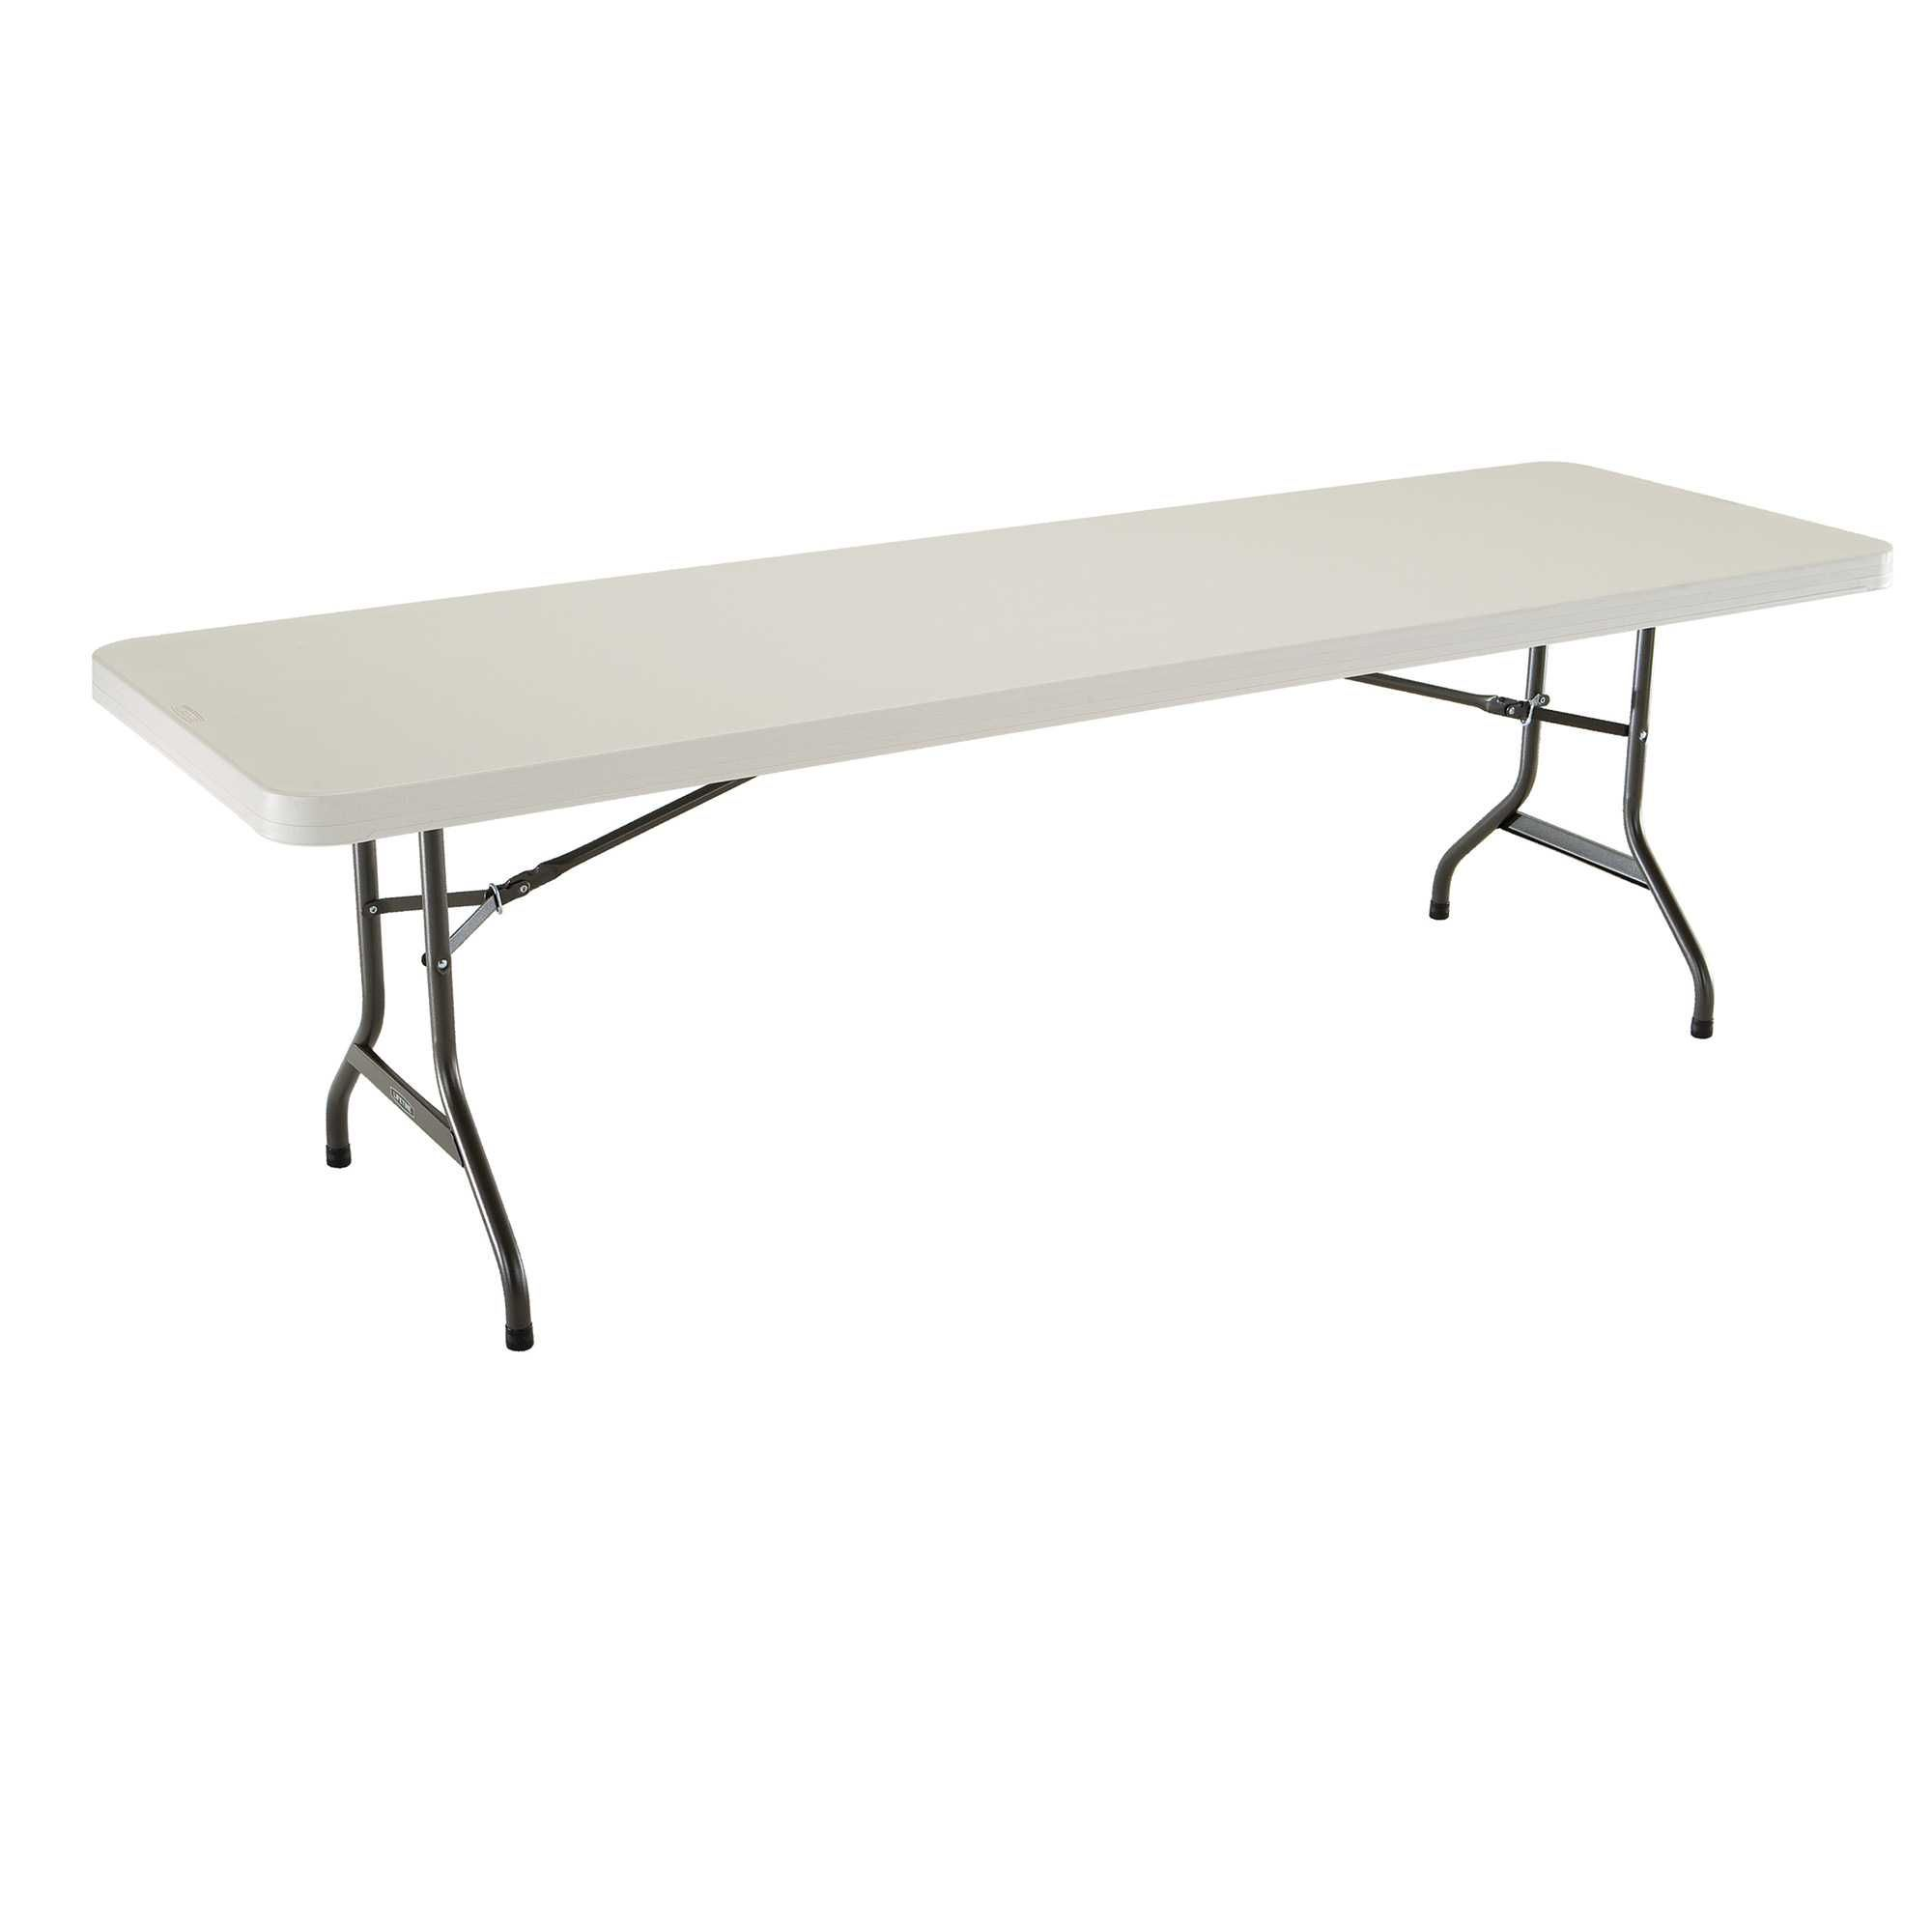 Pin By Competitive Edge Products Inc On Lifetime 8 Ft Banquet Tables Folding Table Round Folding Table Lifetime Tables